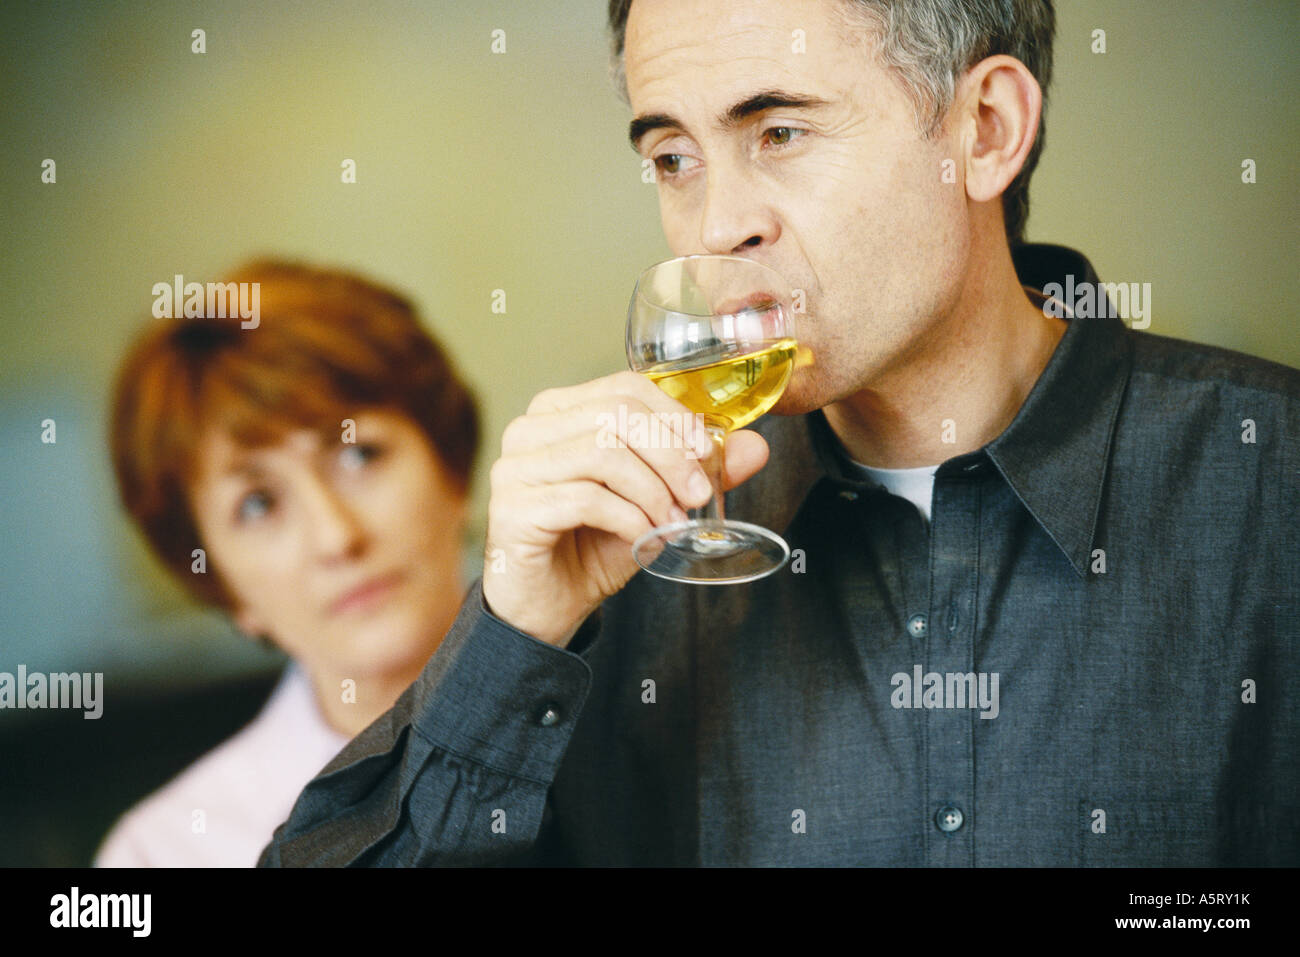 Senior man drinking glass of wine, senior woman looking at him in background - Stock Image